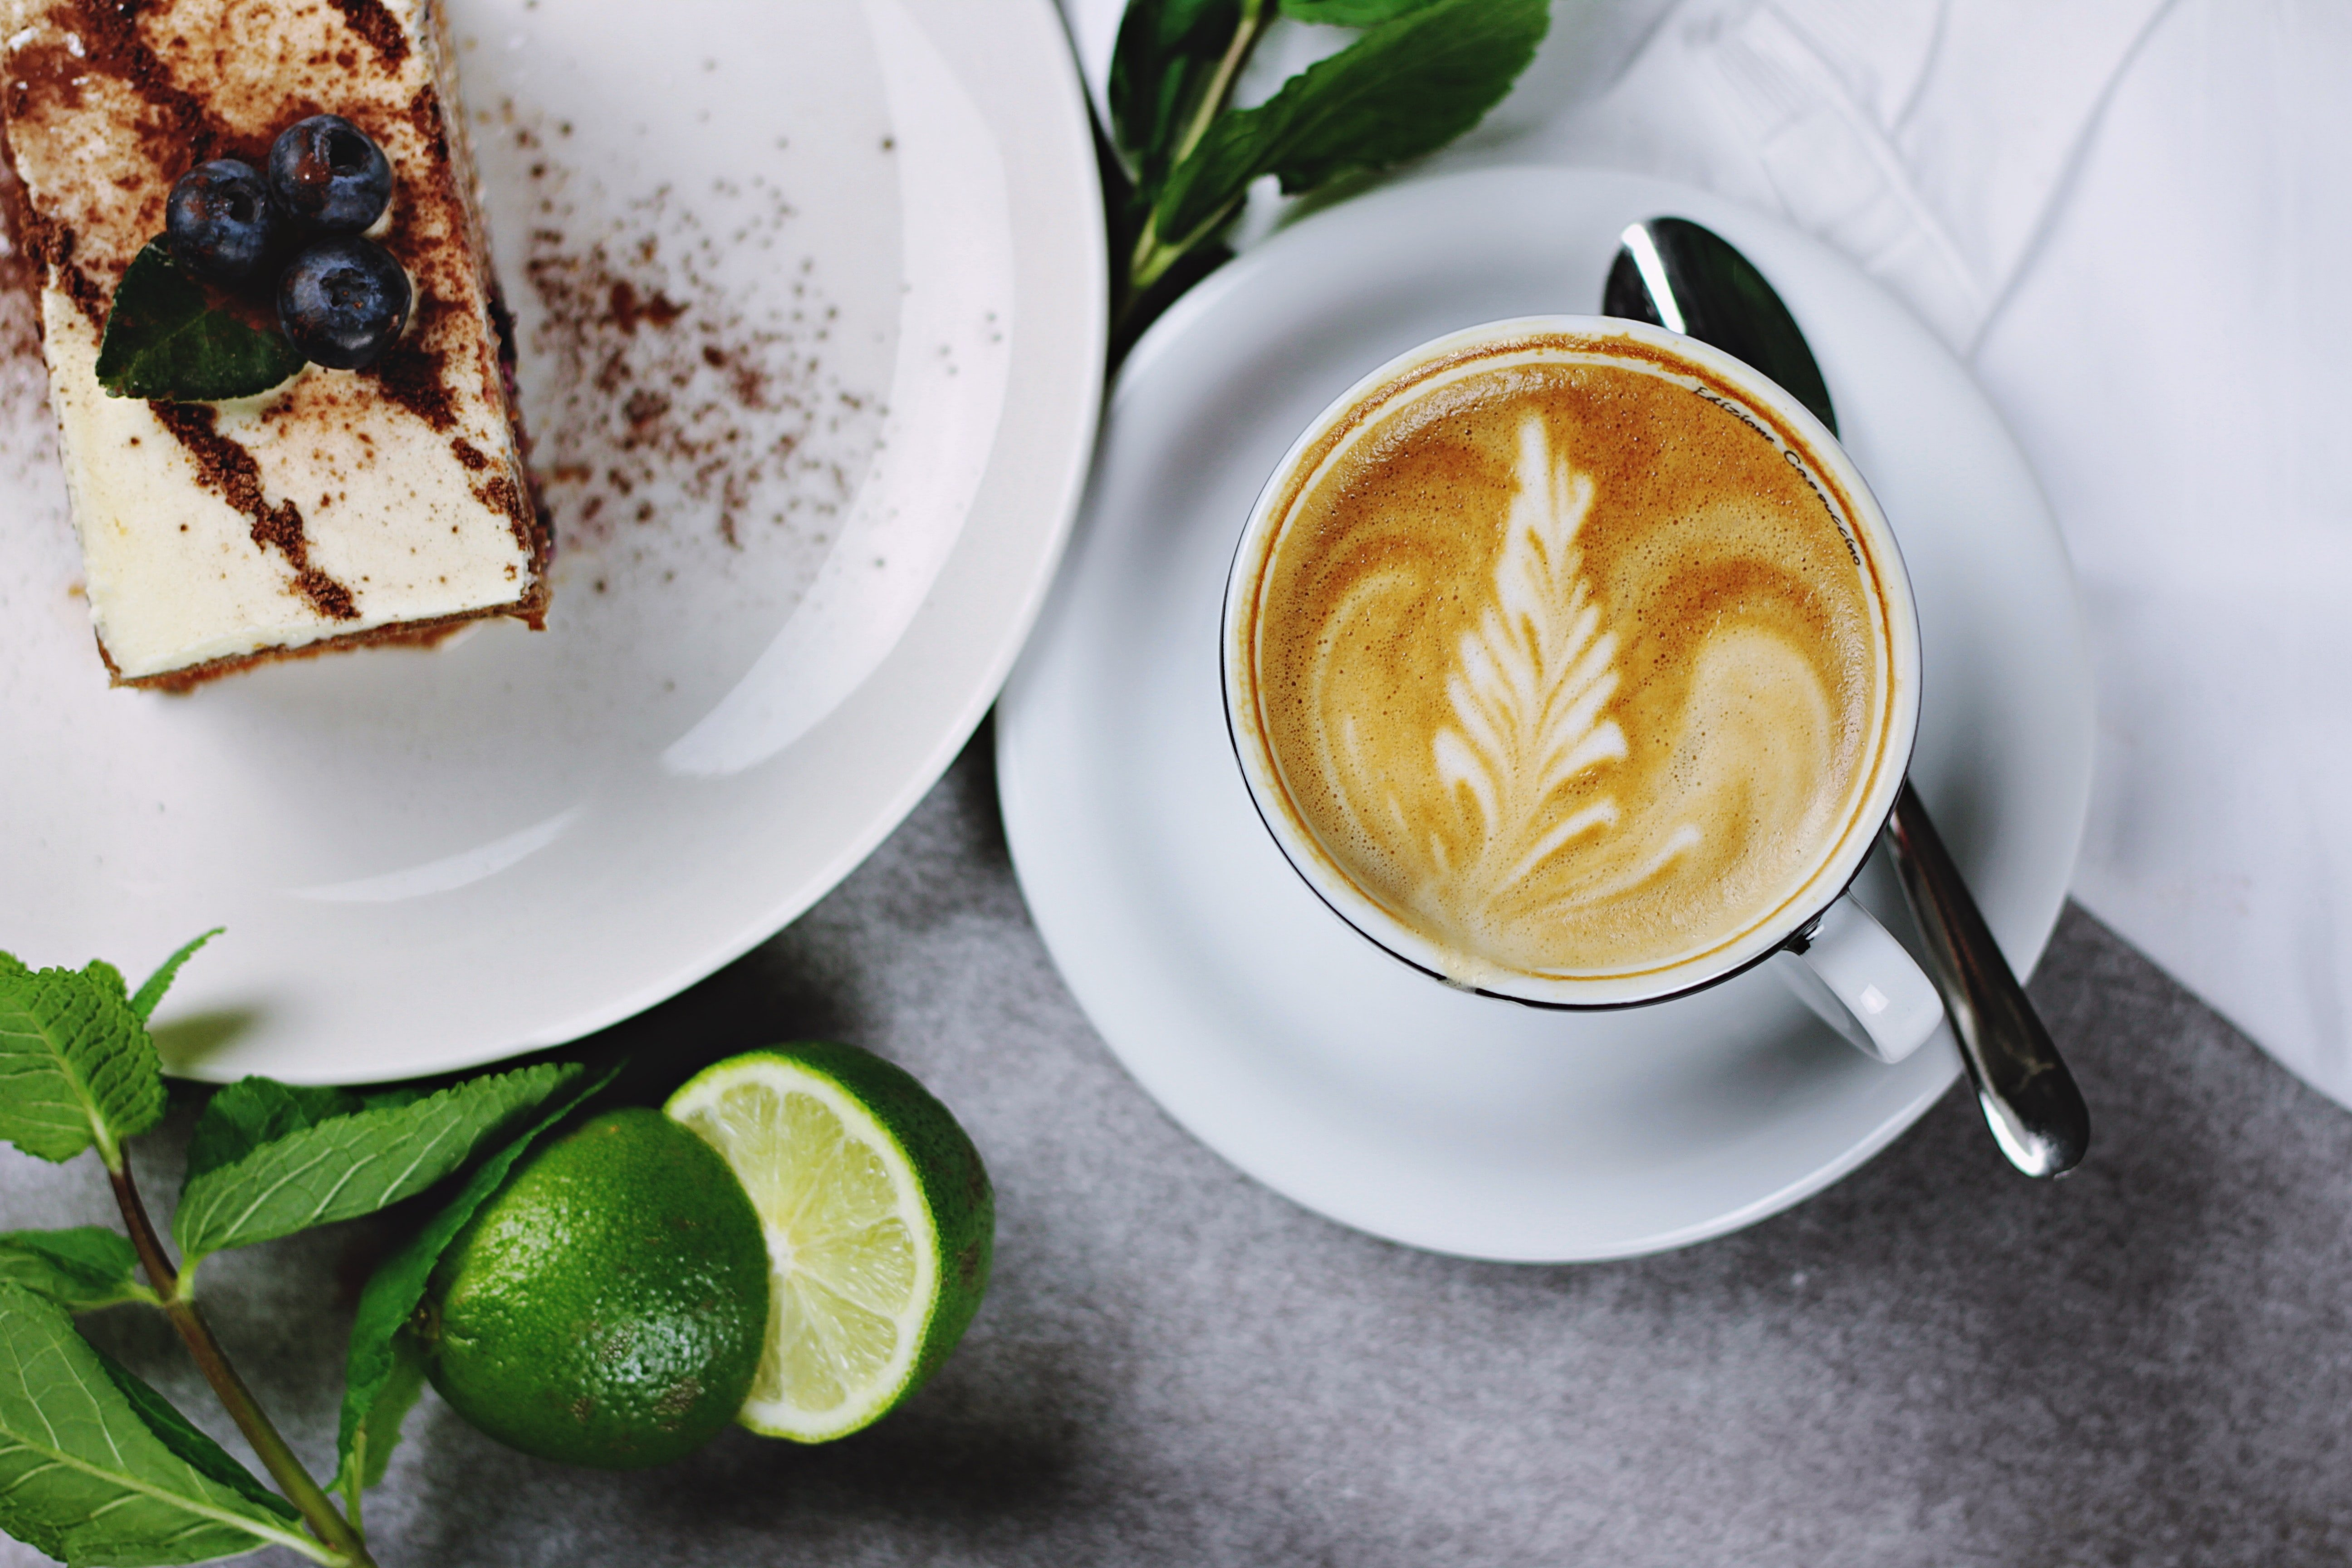 6 Best Cafes In Dubai To Enjoy Food And Coffee